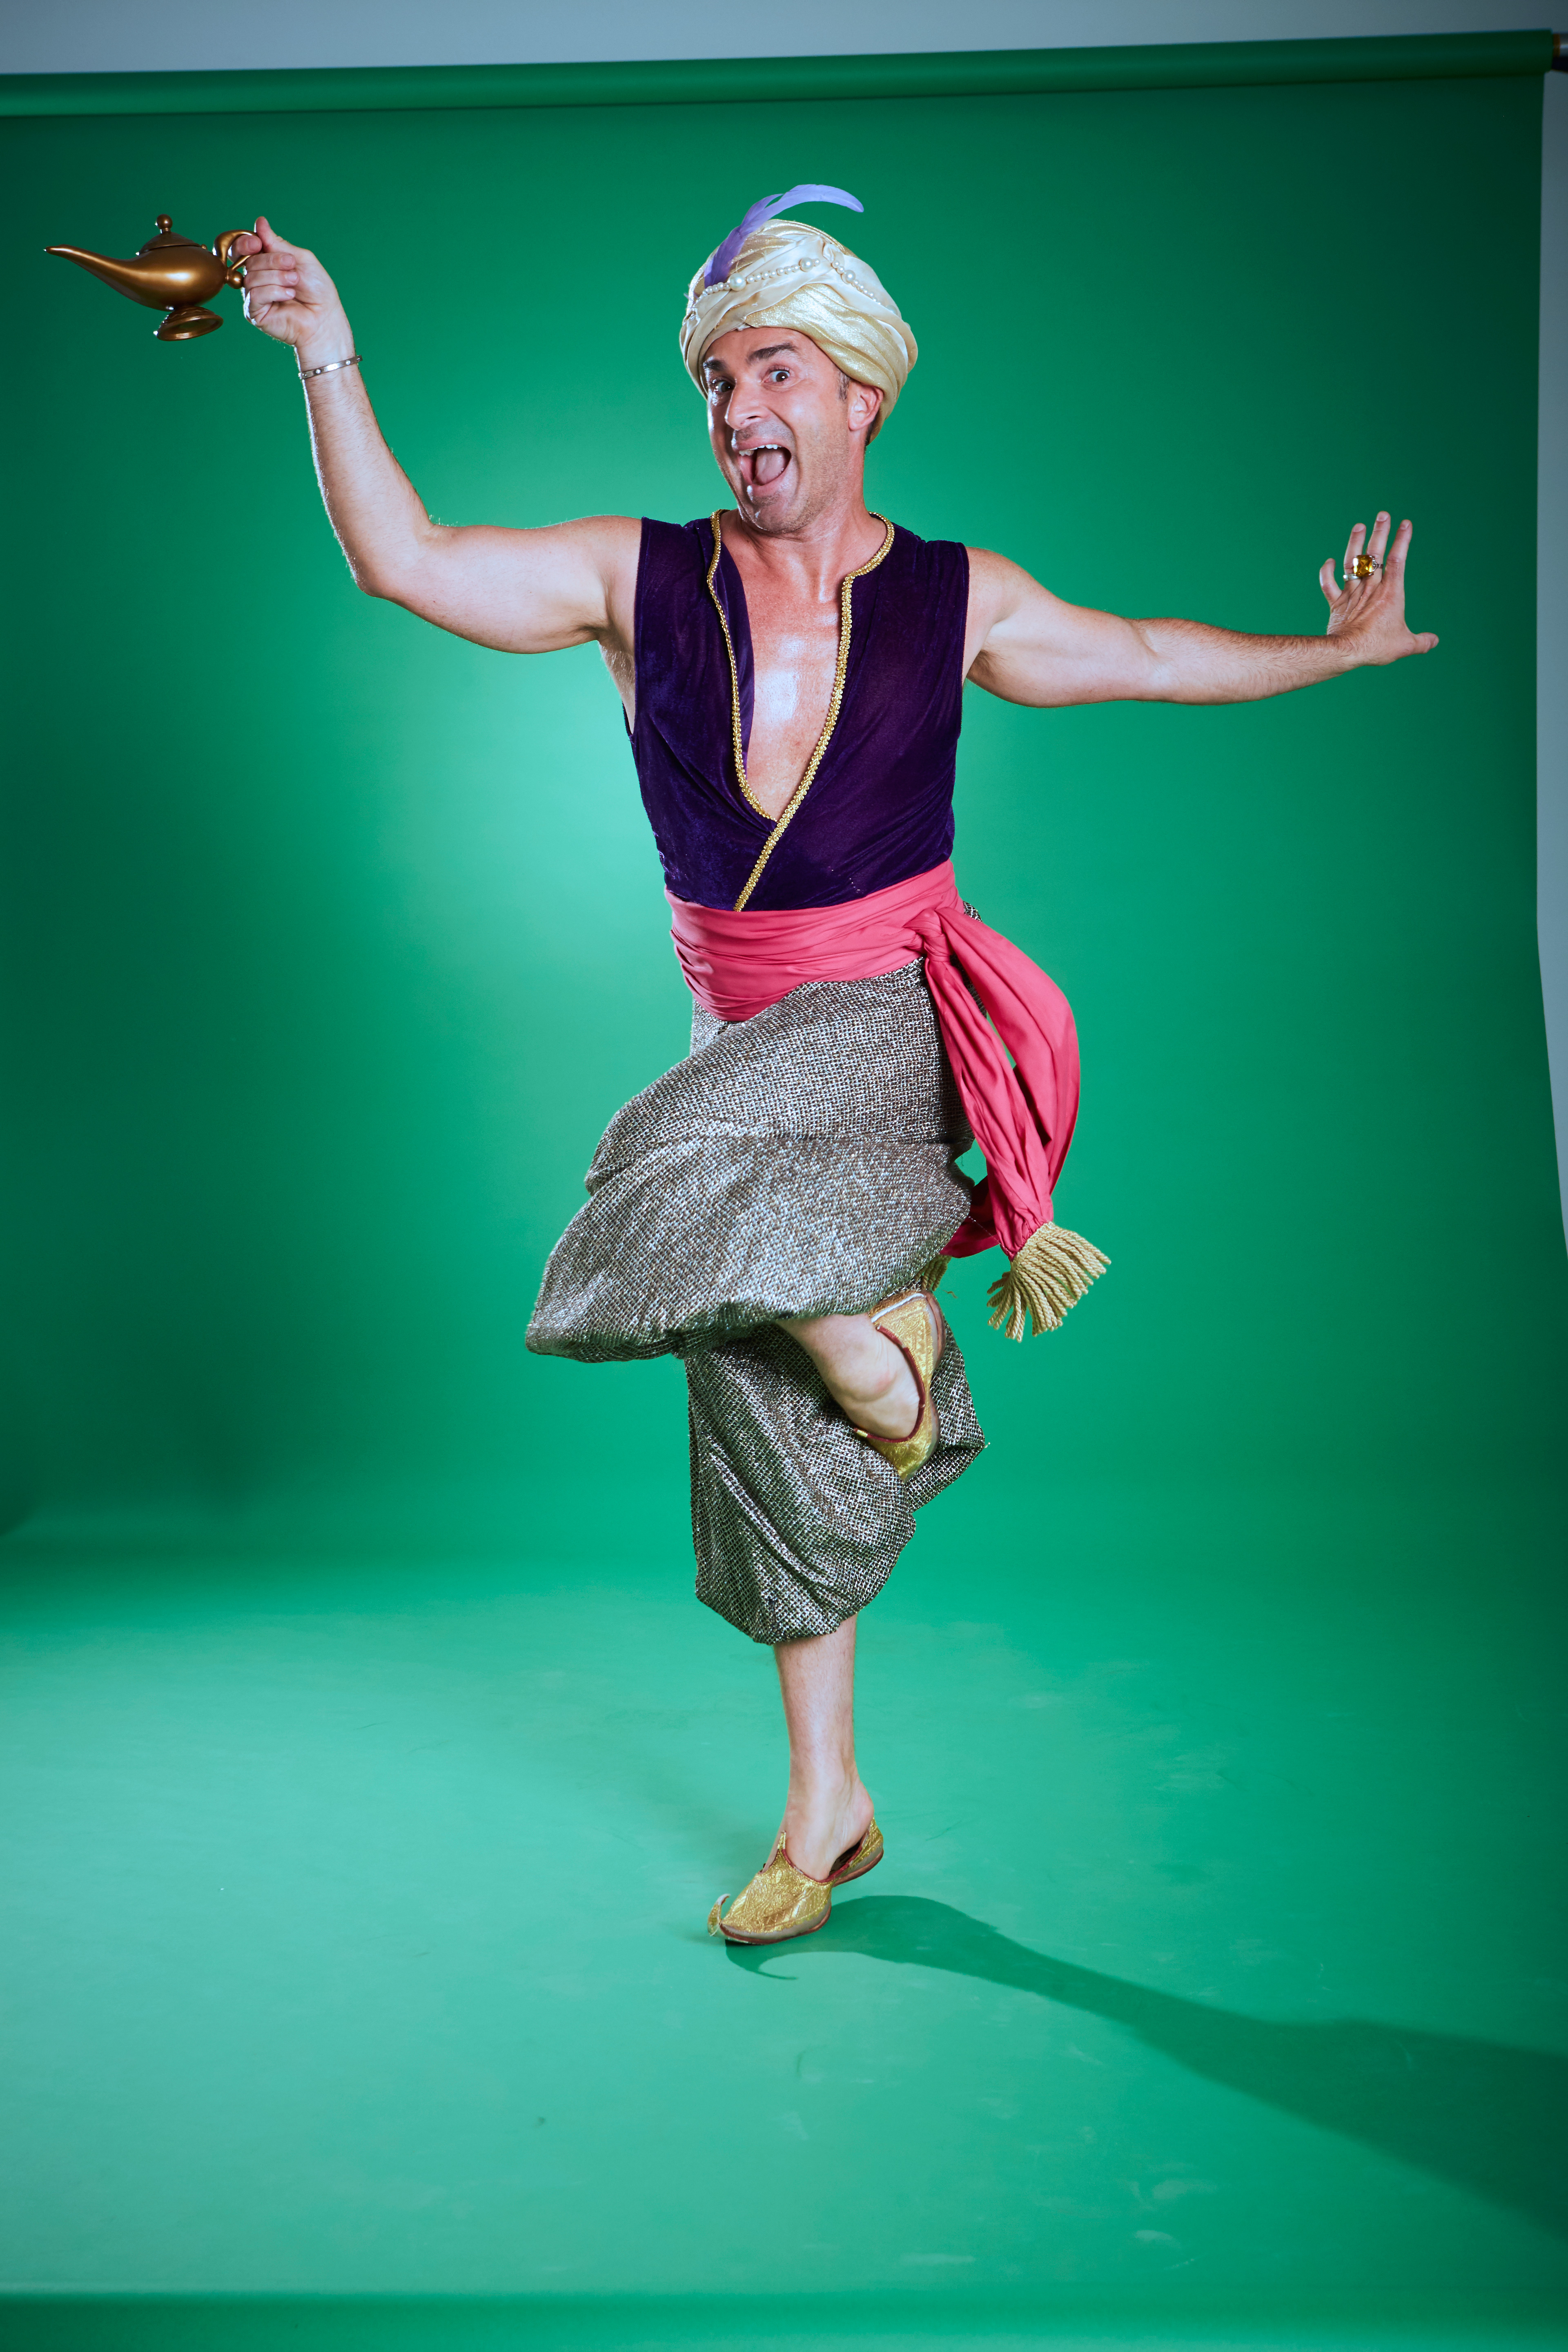 Louie Spence is new face of Spin Genie